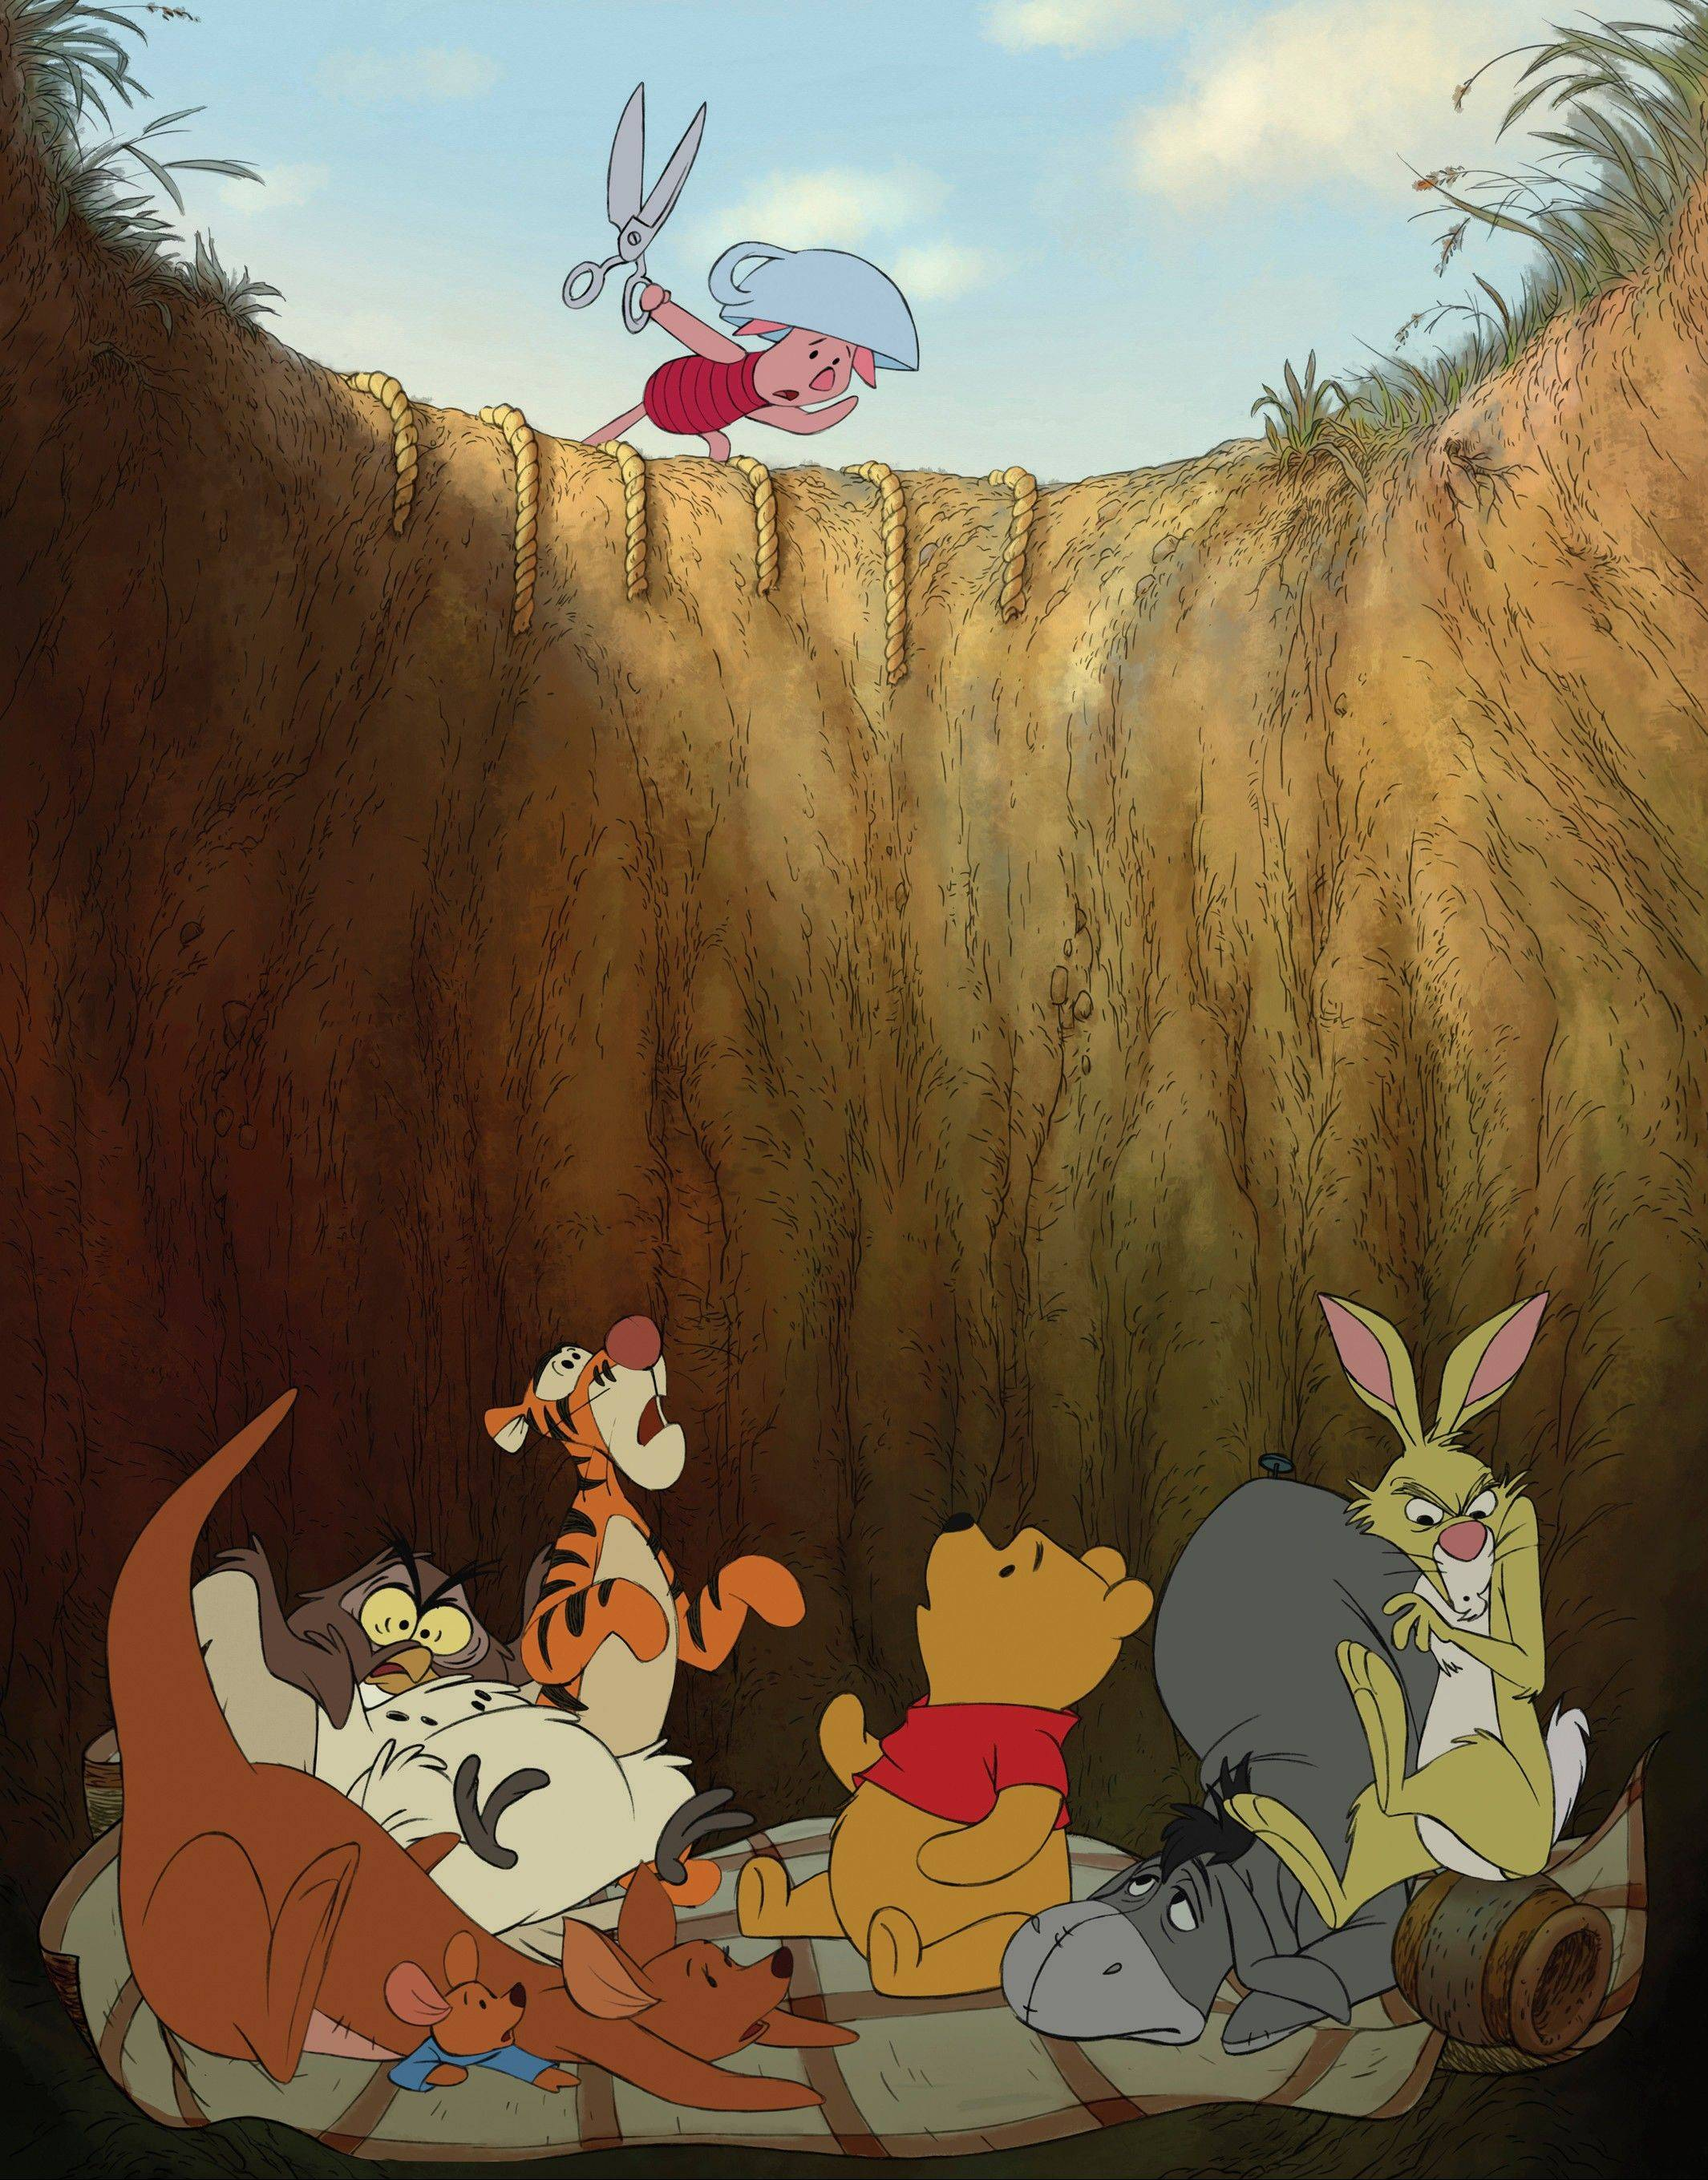 Kanga, Roo, Owl, Tigger, Winnie the Pooh, Eeyore and Rabbit must depend on Piglet to rescue them.